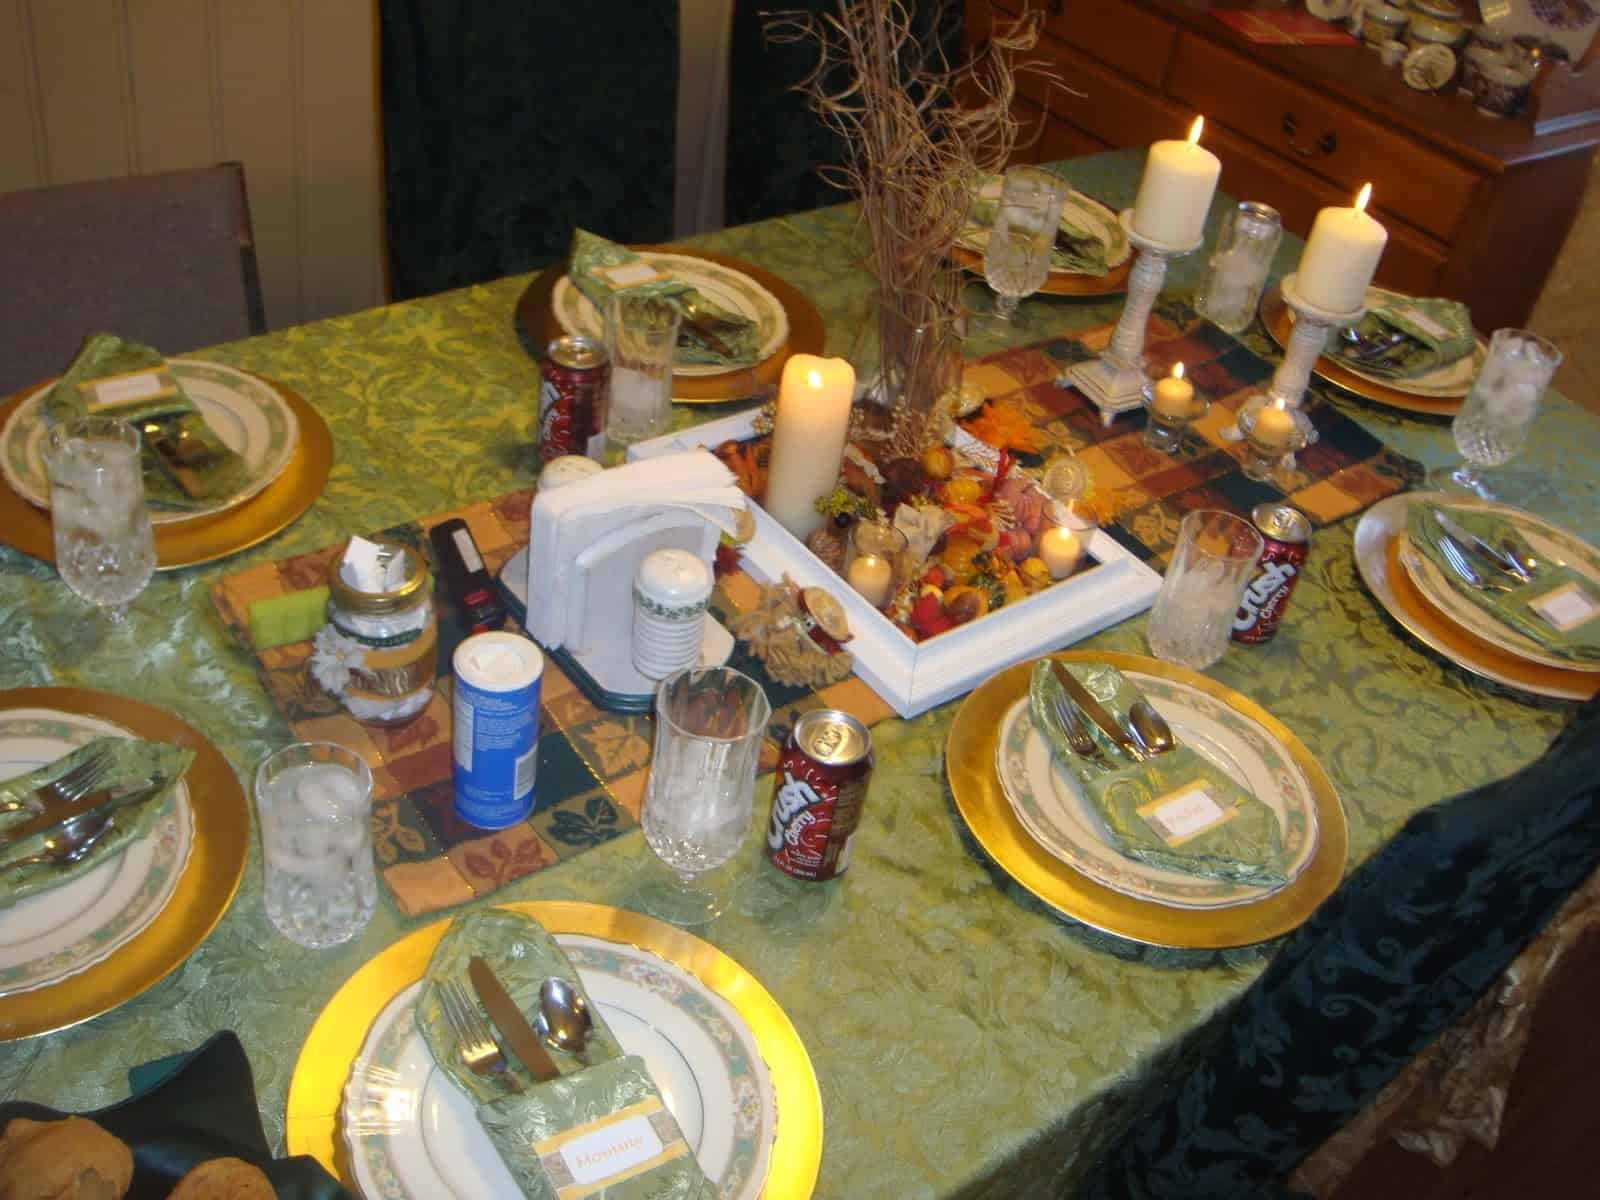 Table set with green tablecloth, gold chargers, fine china and crystal and Thanksgiving arrangement